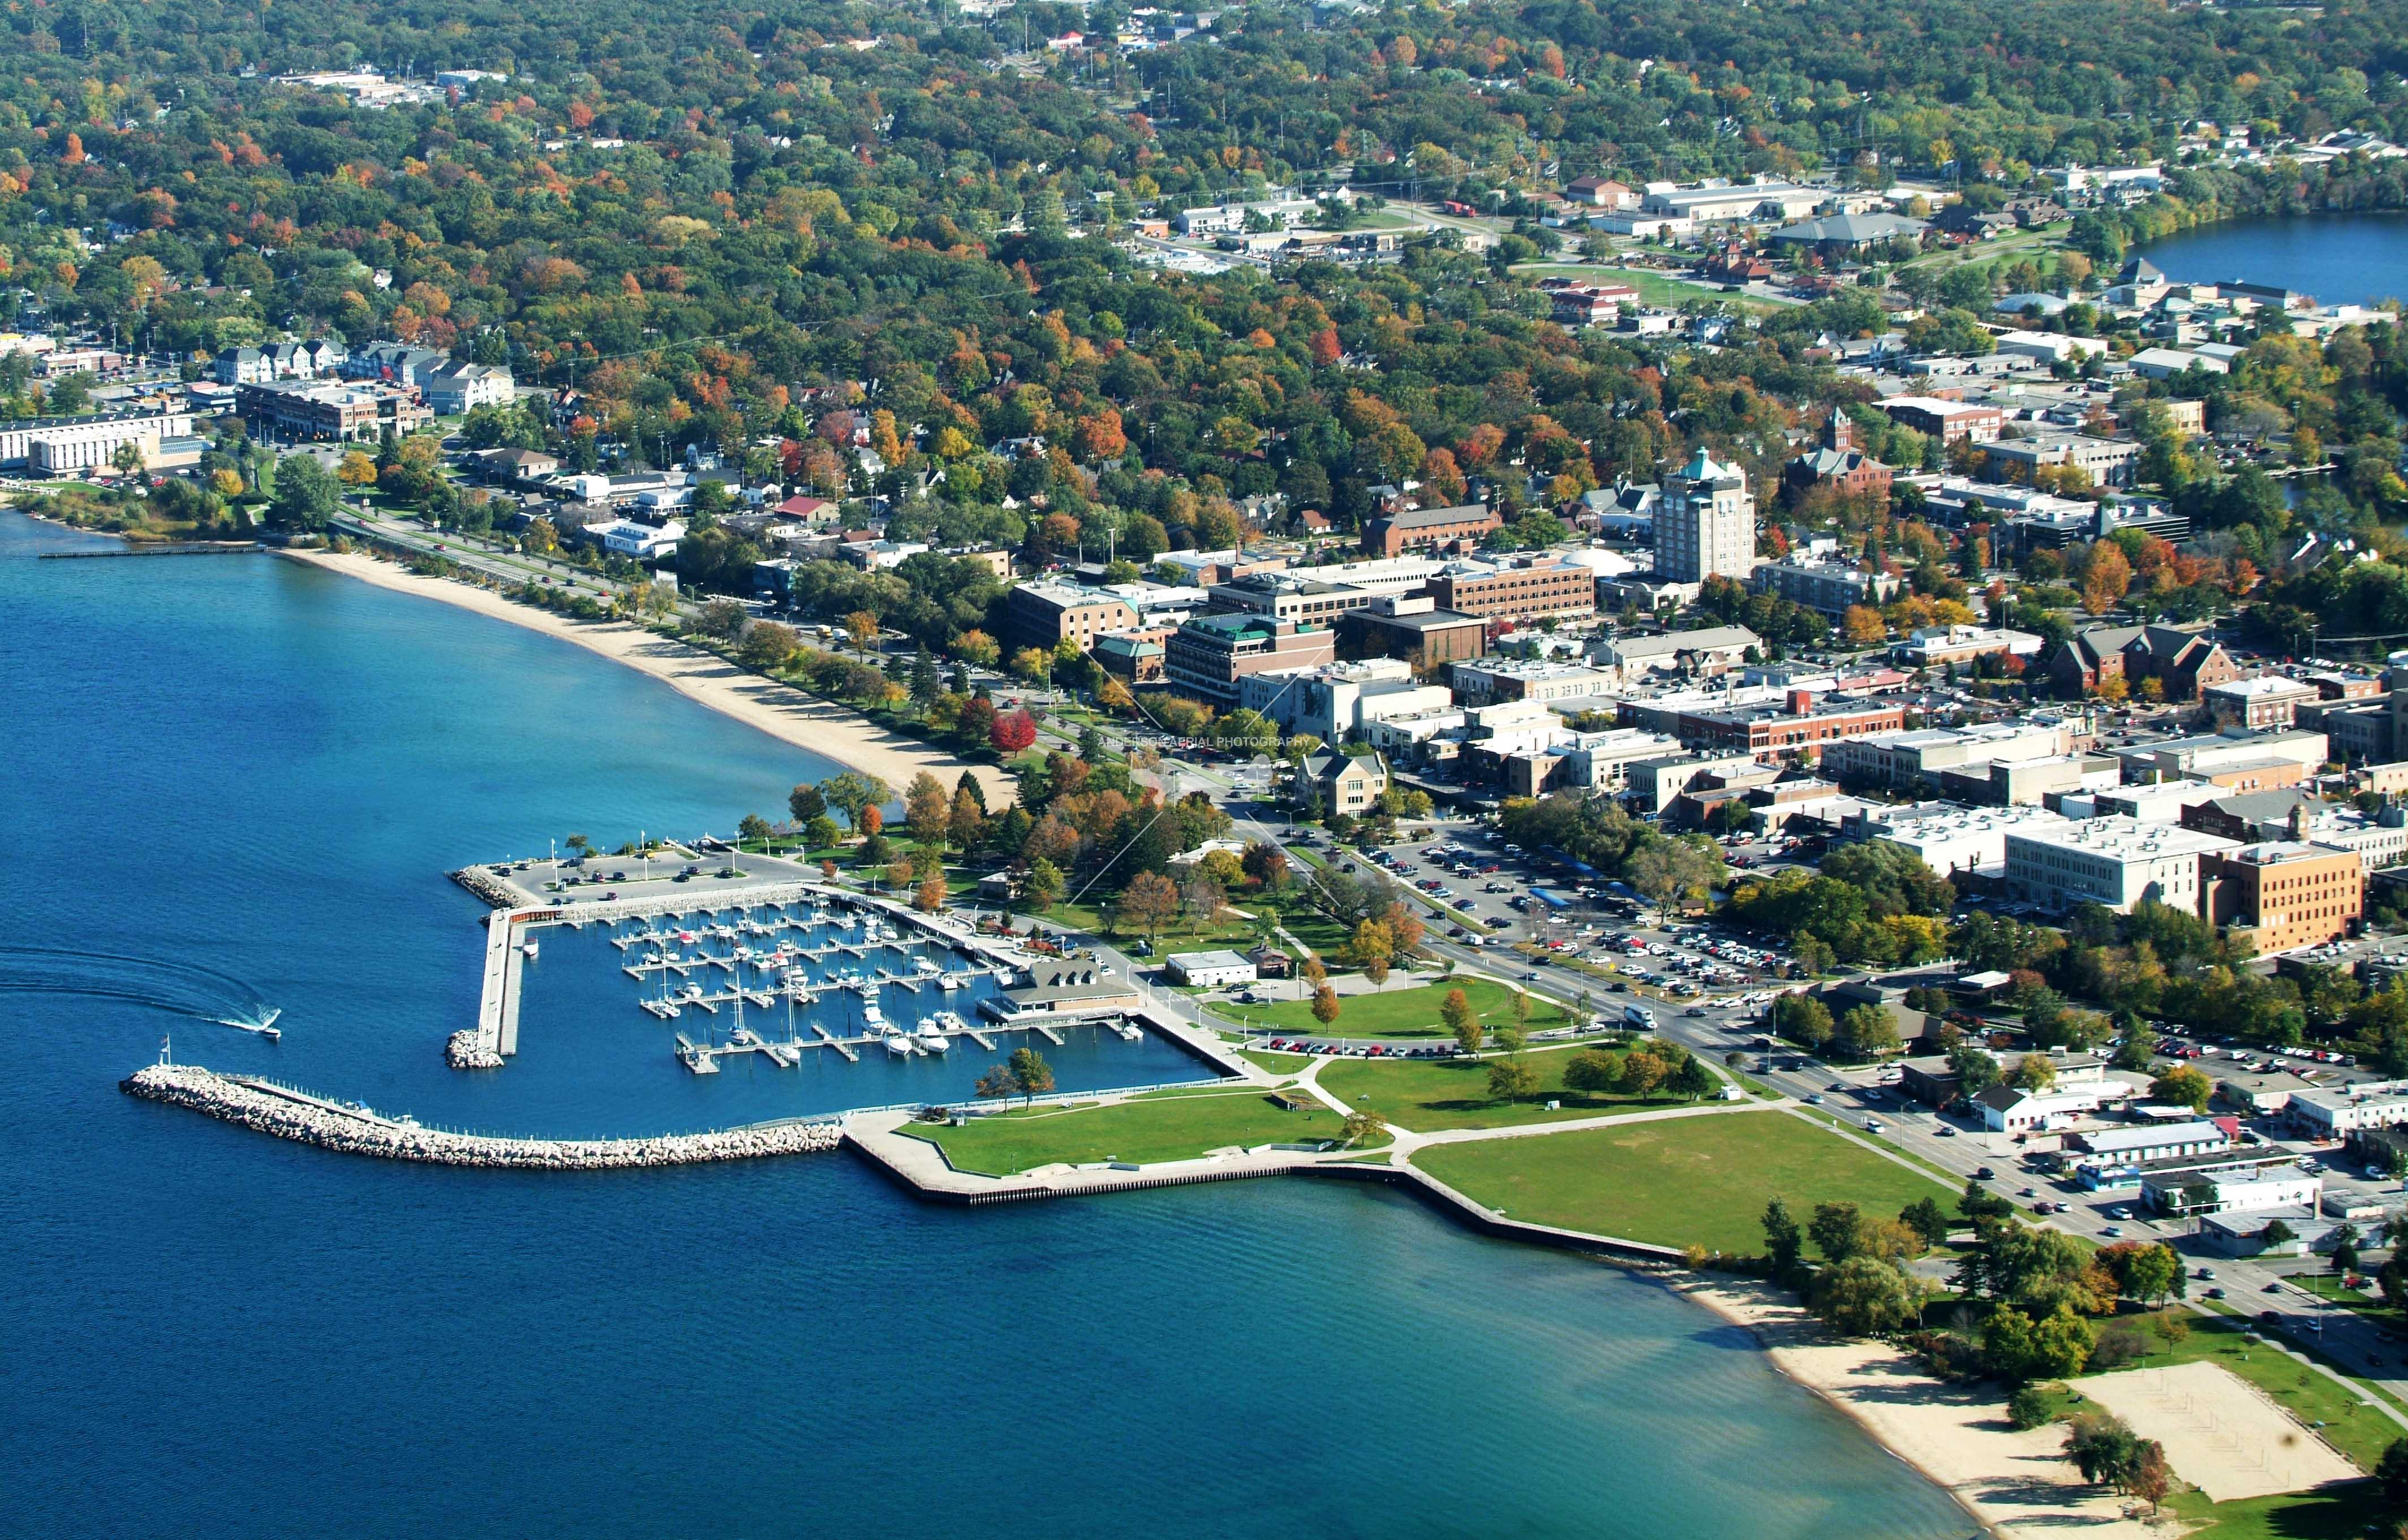 A picture of downtown traverse city from the air.